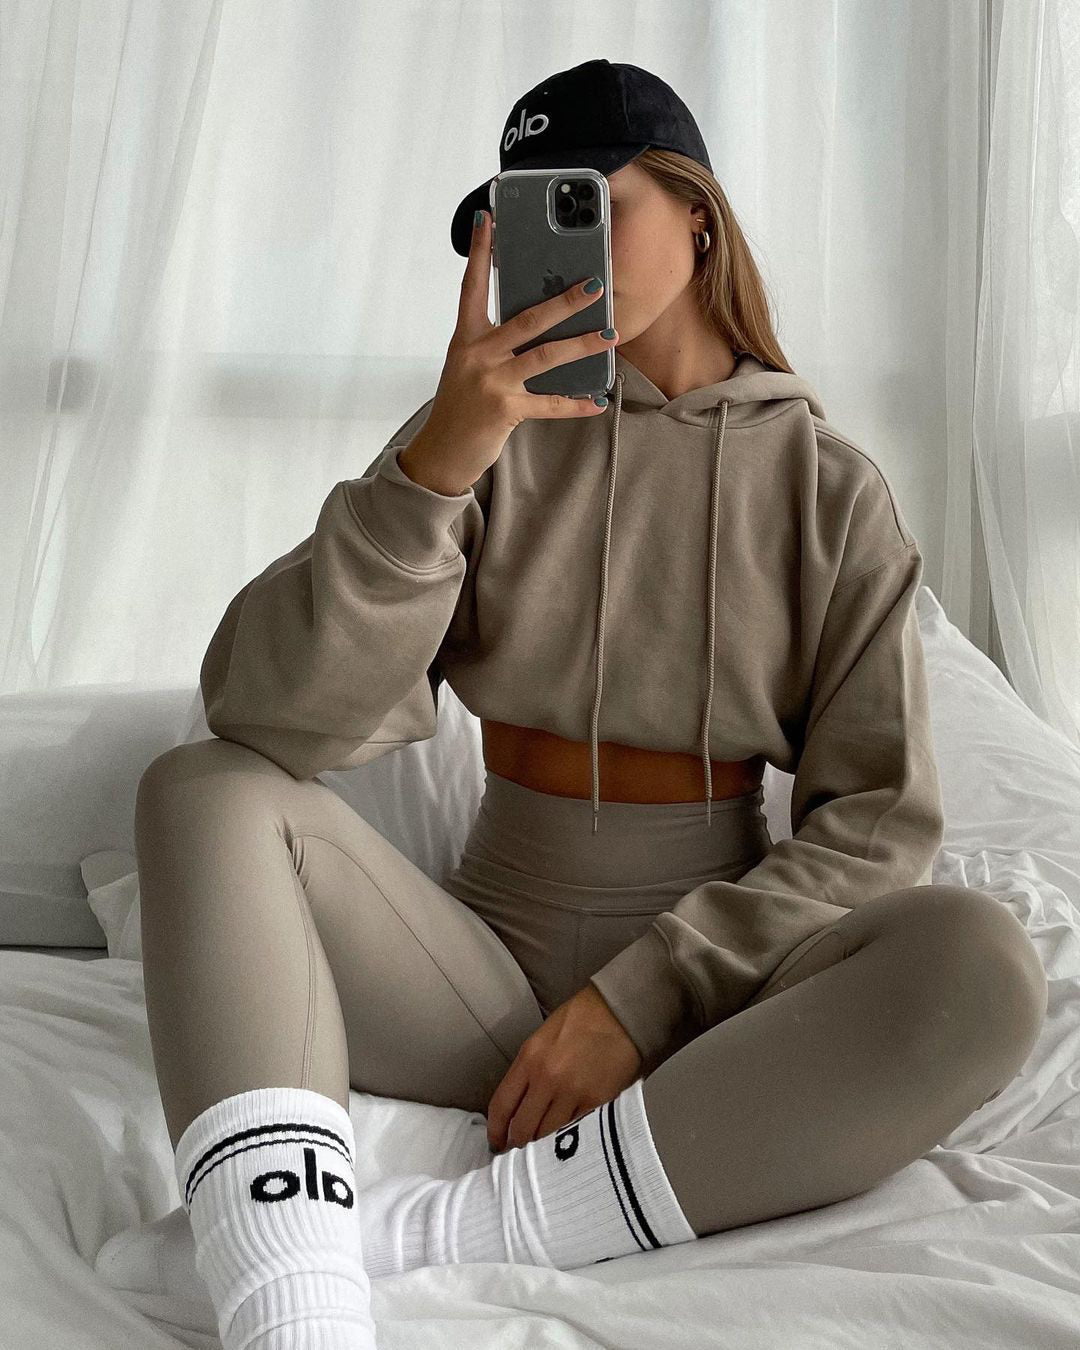 Woman wearing High-Waist Airlift Leggings with the Bae Hoodie, both in Gravel, paired with an Alo Off-Duty Cap and Woman's Throwback Socks while posing in bed for a mirror selfie.